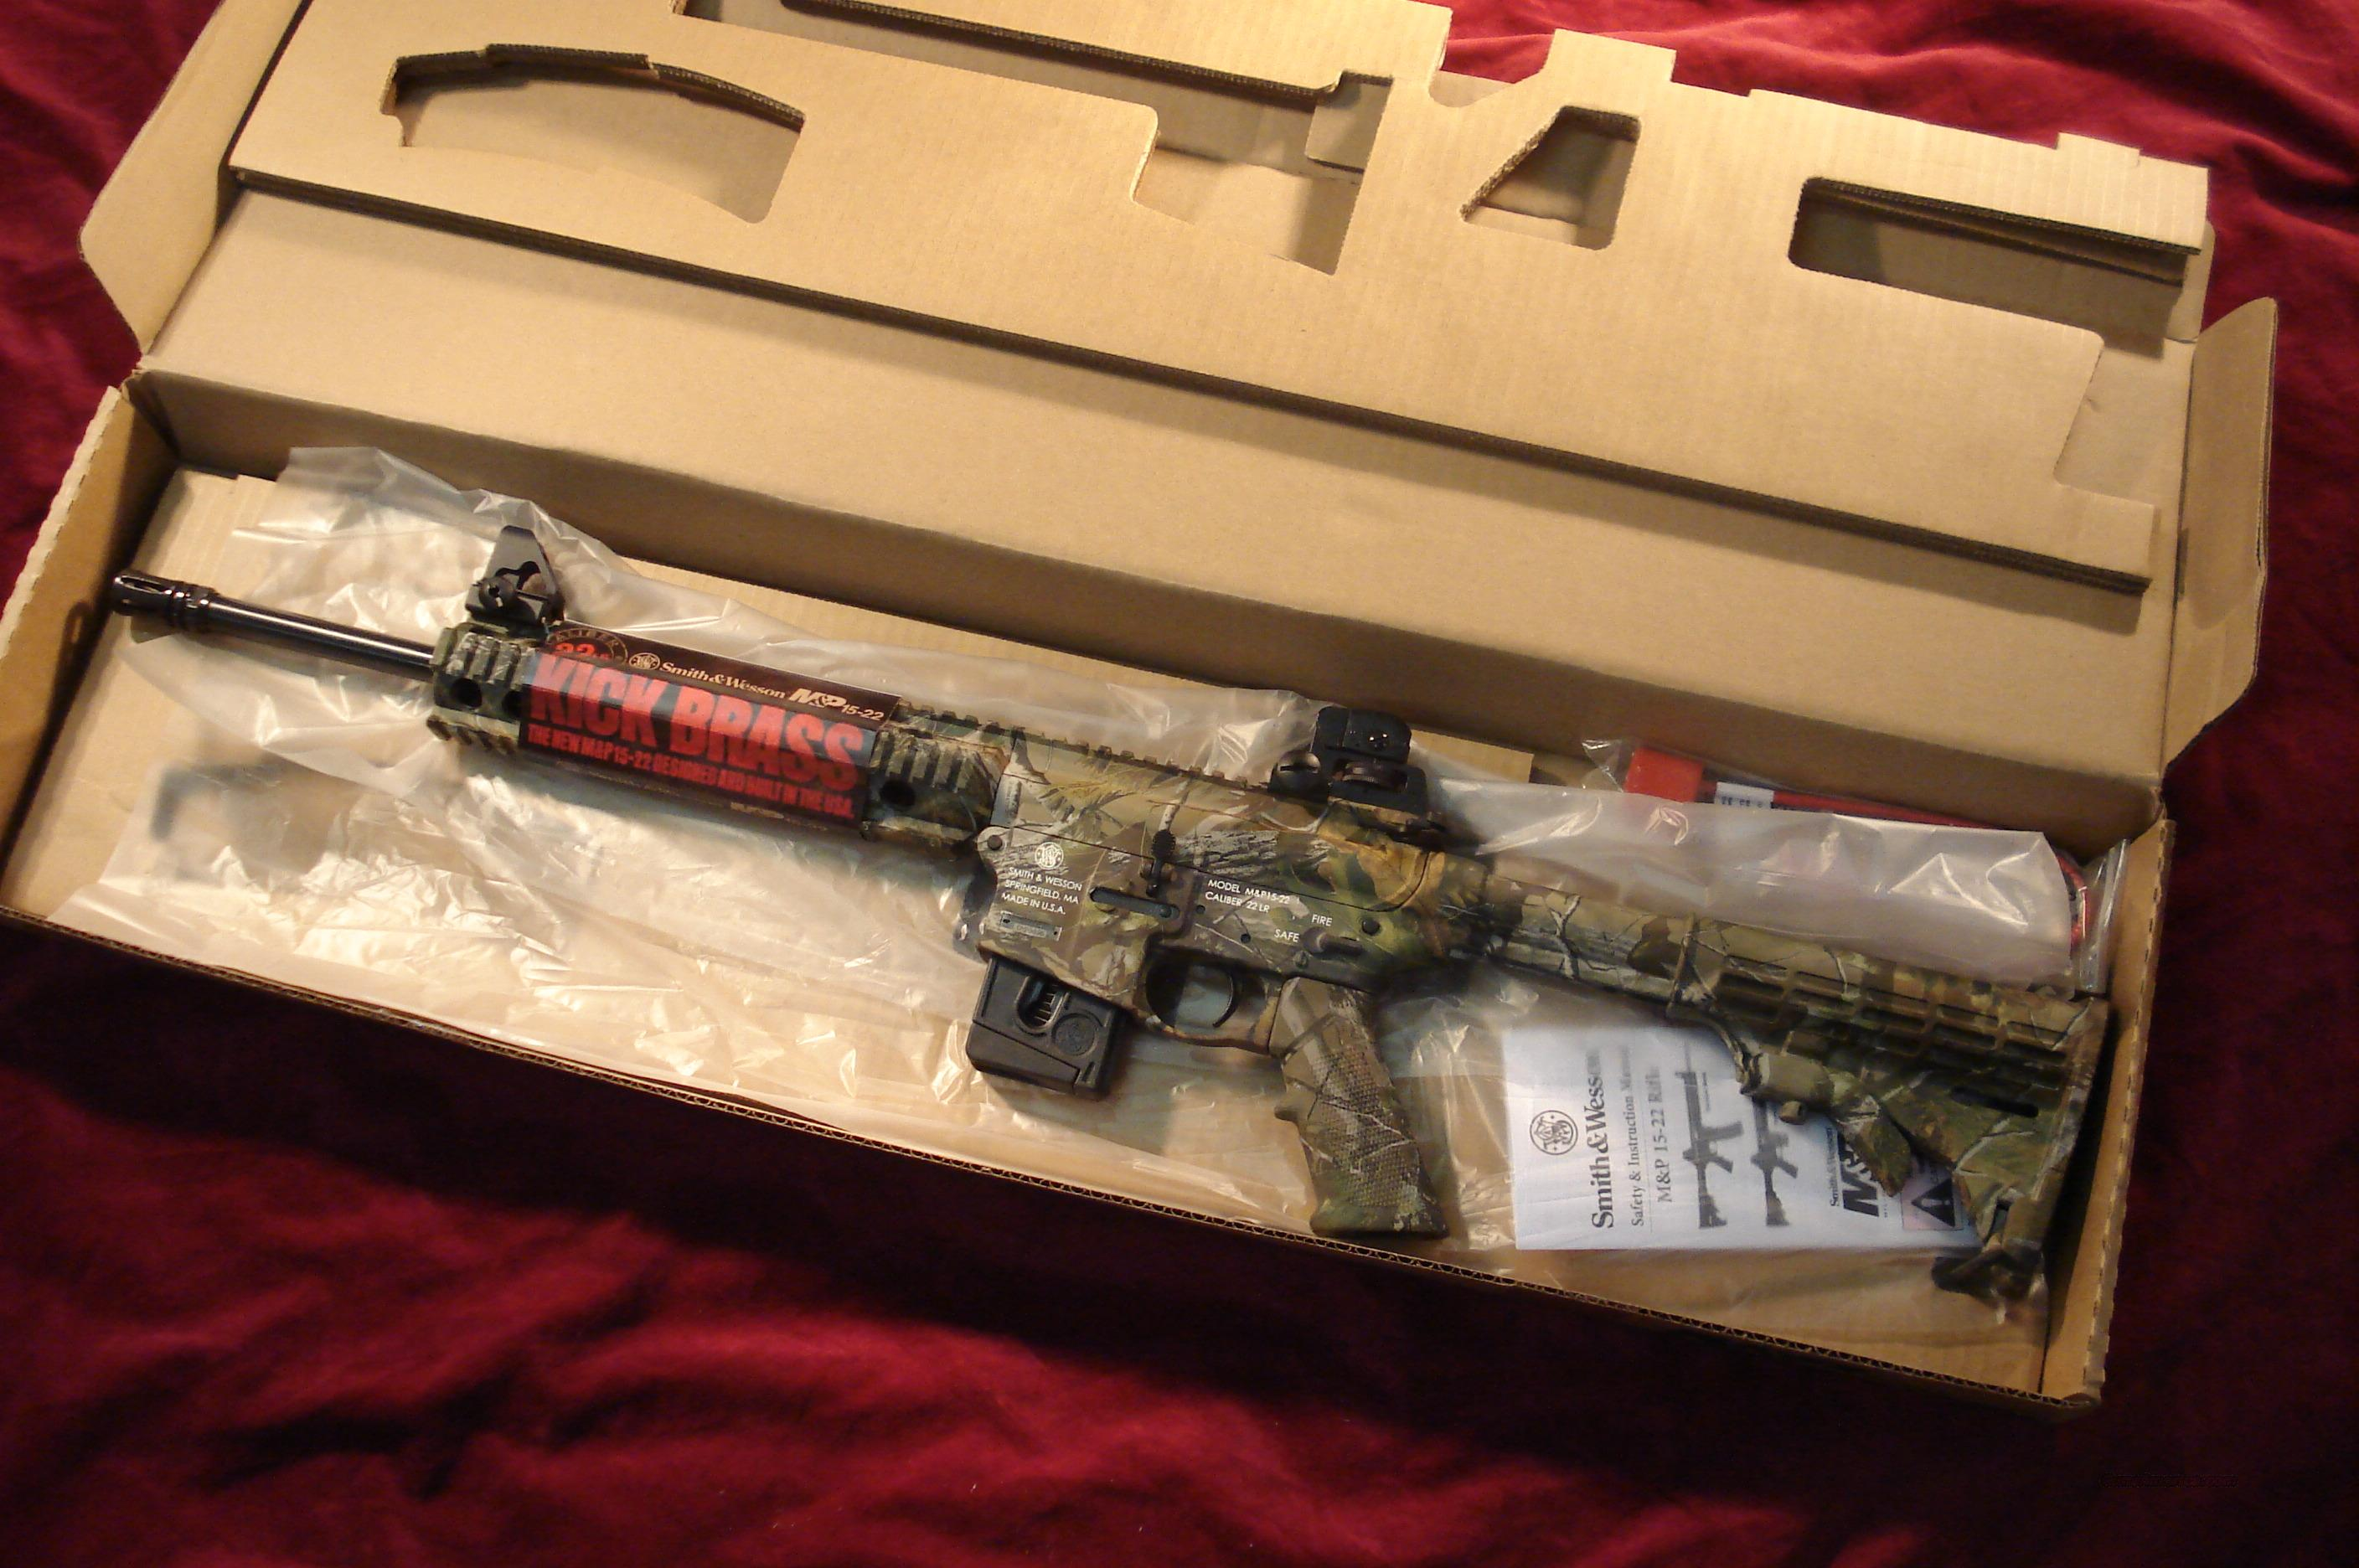 SMITH & WESSON M&P15-22 REALTREE APG CAMO WITH COMP. NEW  Guns > Rifles > Smith & Wesson Rifles > M&P